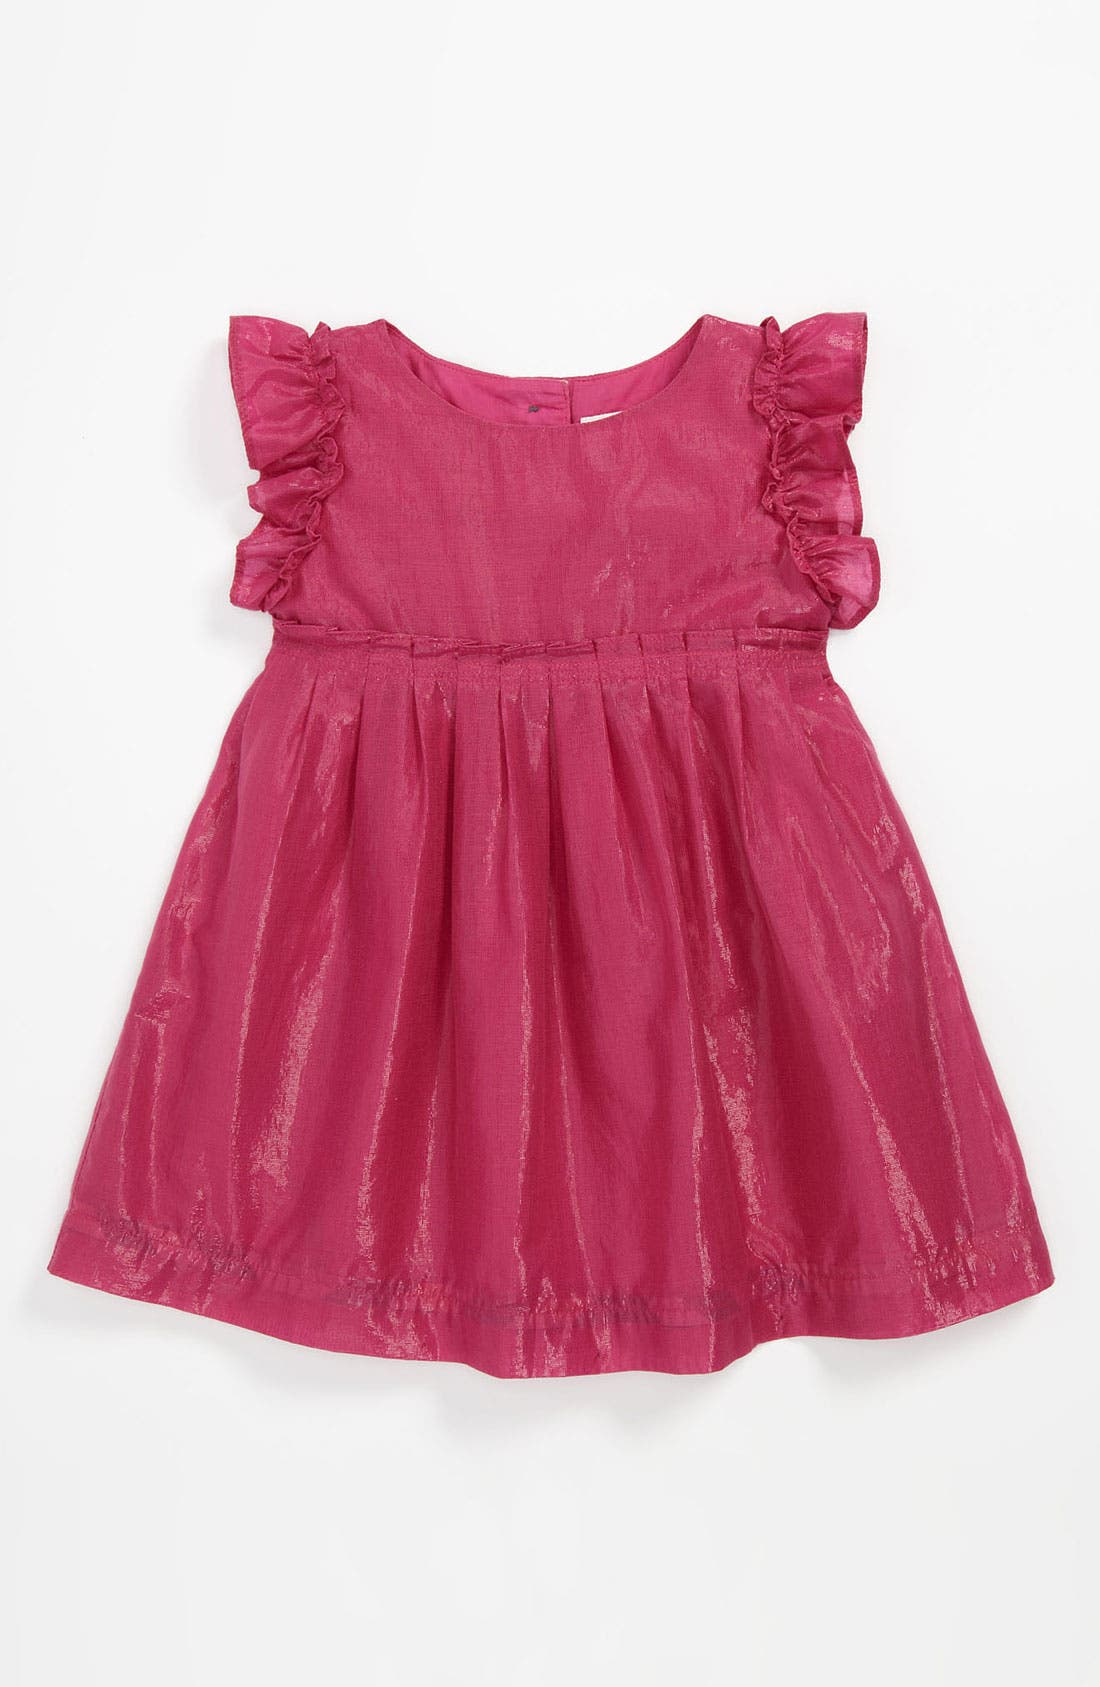 Alternate Image 1 Selected - Burberry 'Nadia' Dress (Baby)